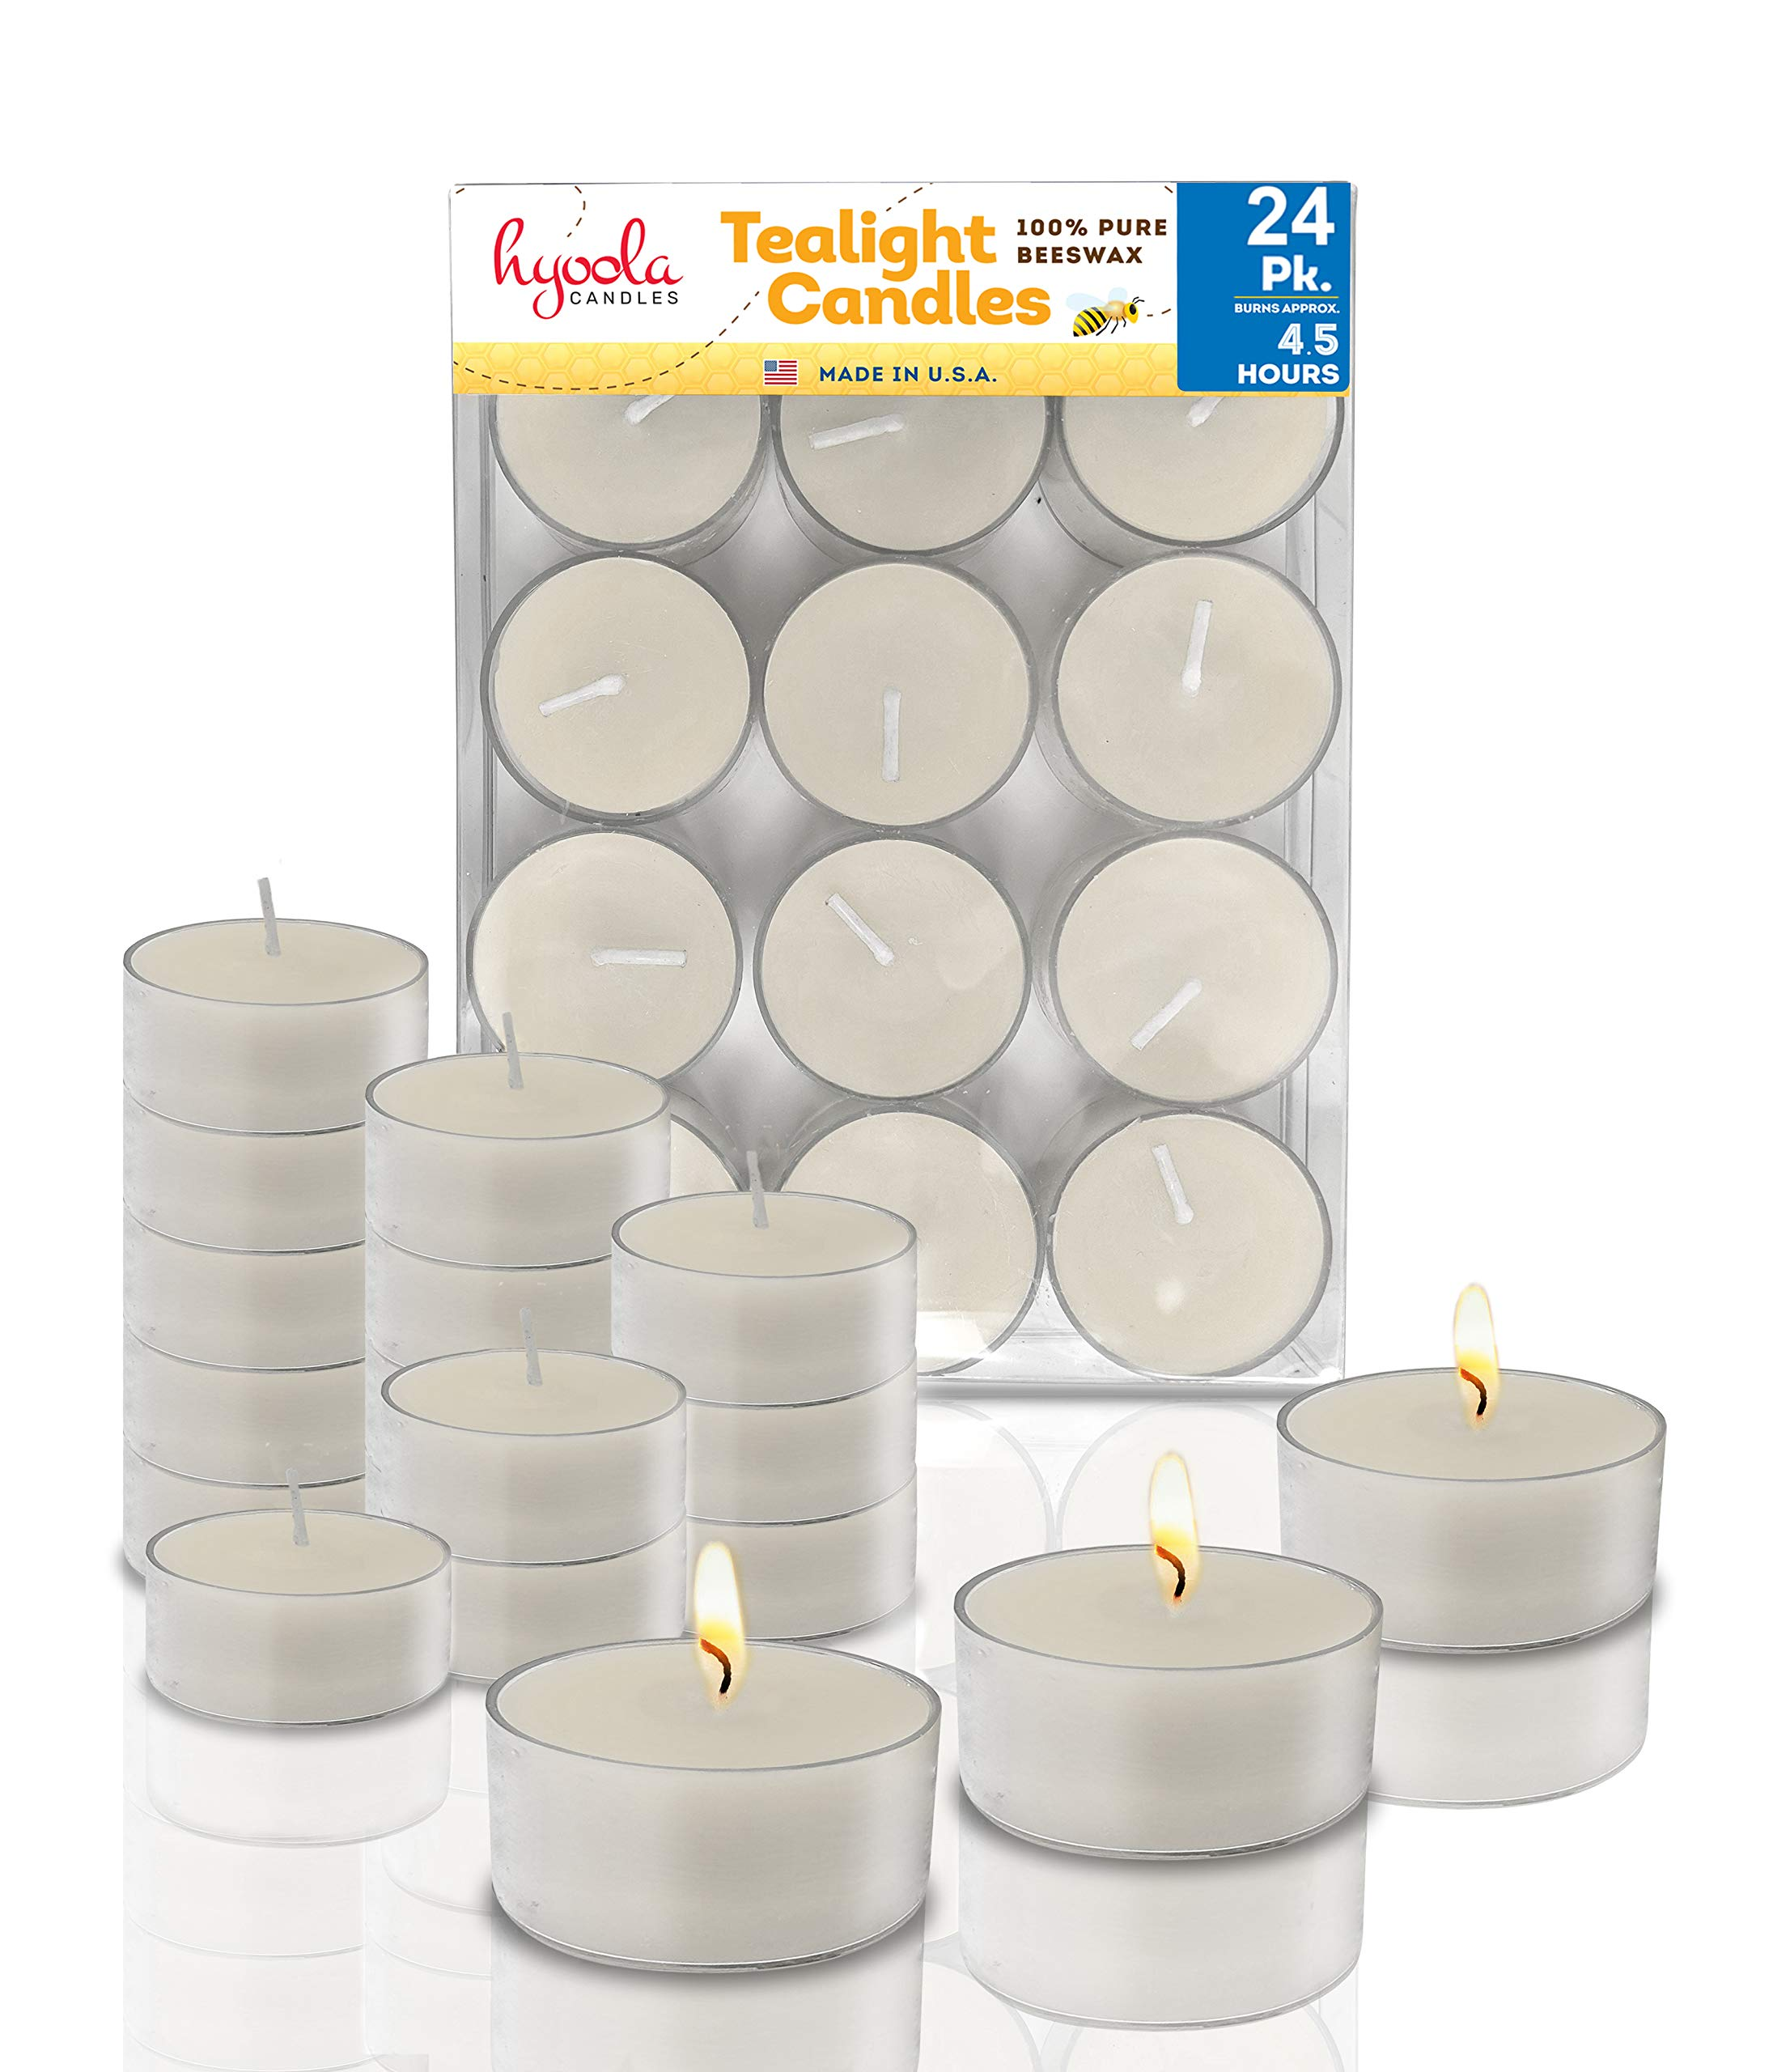 Pure White Beeswax Tea Lights - 24 Pack - Handmade Decorative Unscented - Tealight Candles - 4 Hour Burn Time, Clear Cup by Hyoola